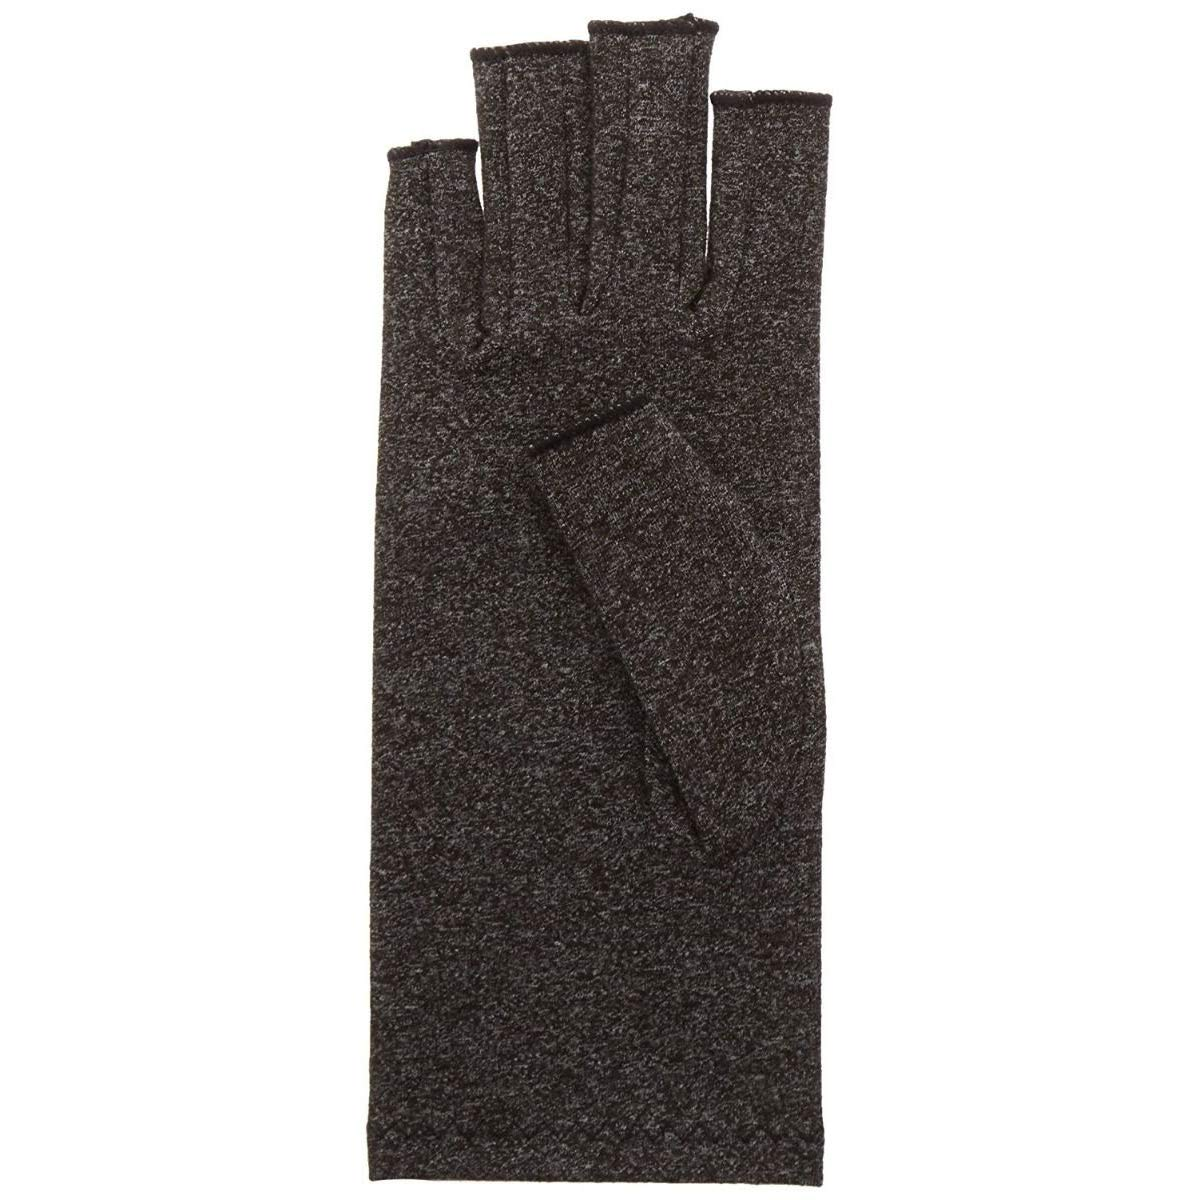 Rolyan Compression Glove, Right Hand, Small, Black, Comfortable & Breathable Blend of Lycra & Cotton, Open Tips, Relief From Rheumatoid Arthritis & Osteoarthritis Joint Pain, Swelling, Stiffness